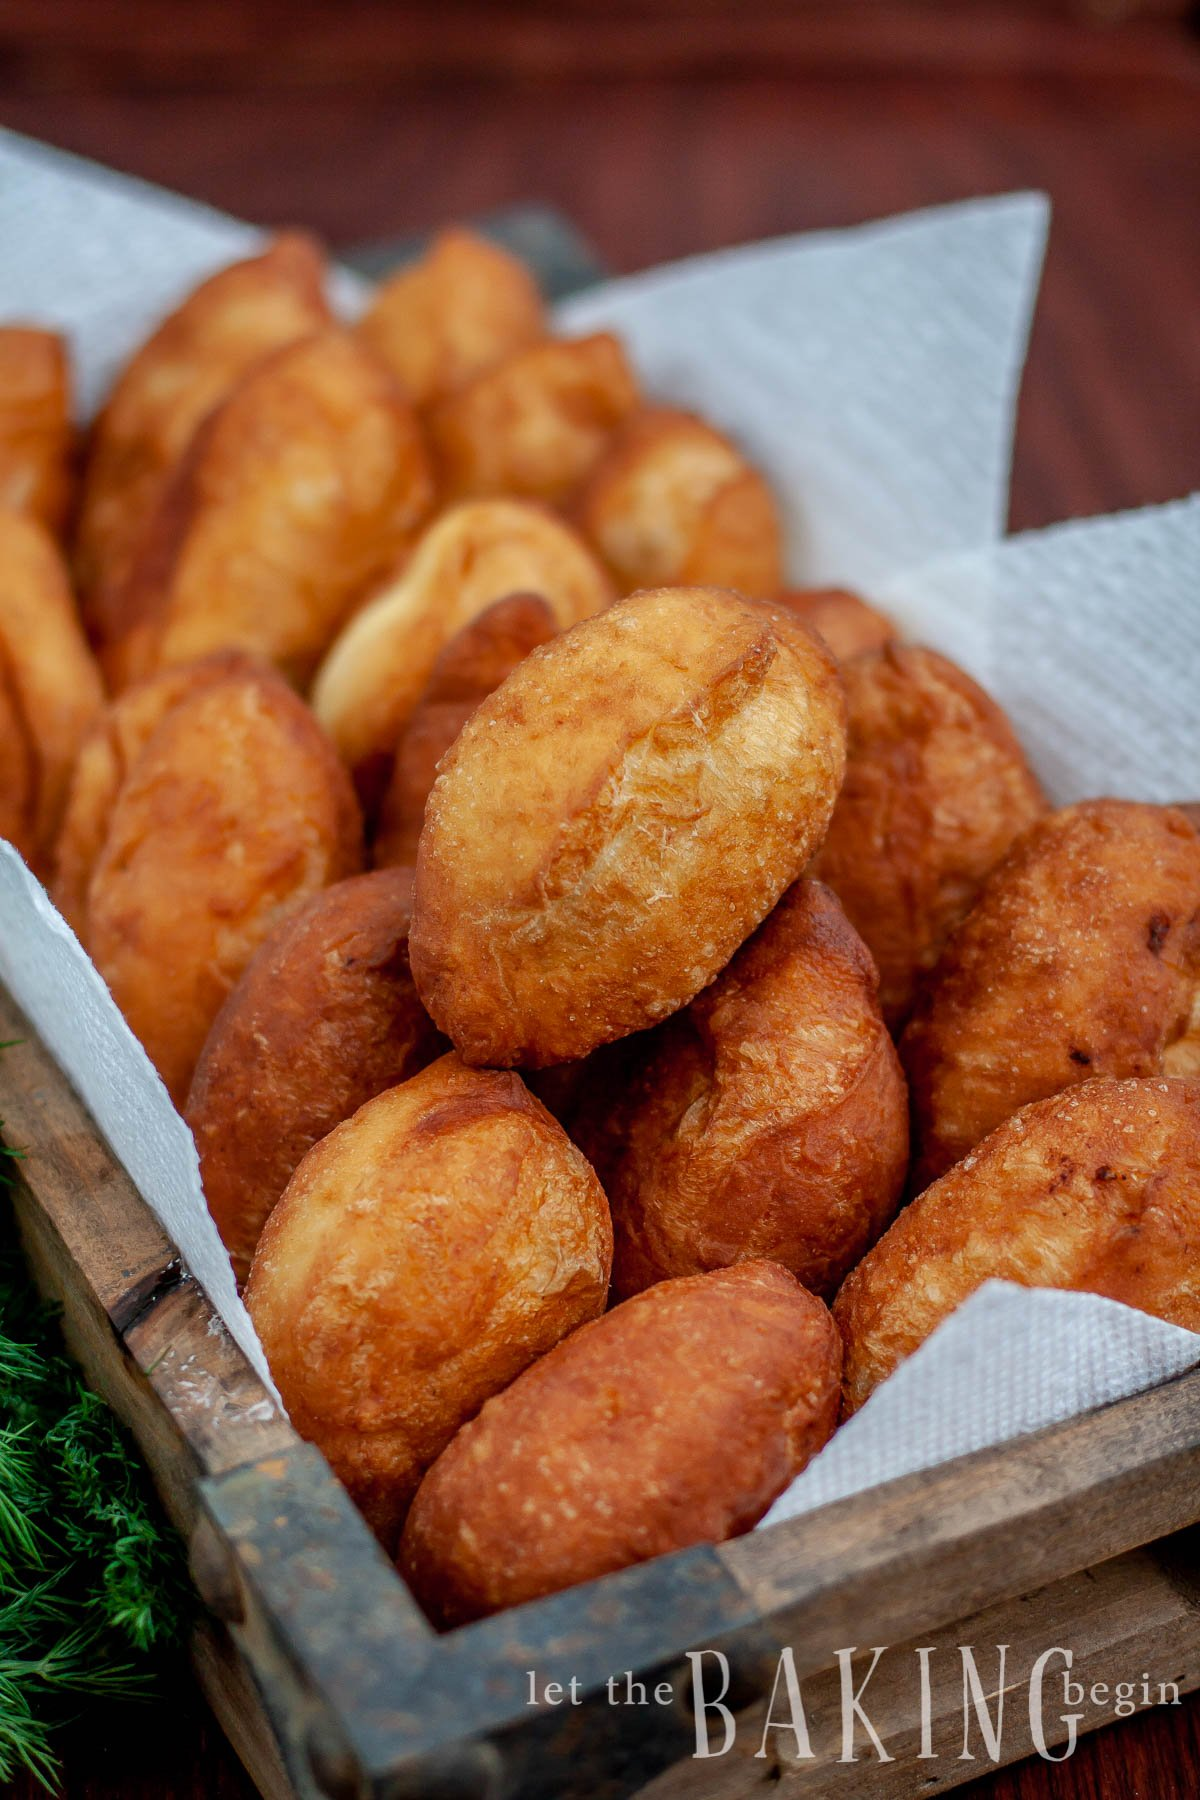 Meat Piroshki or Piroshky are little pockets of soft yeast dough, stuffed with juicy filling and then fried for the glorious perfection of a bite.